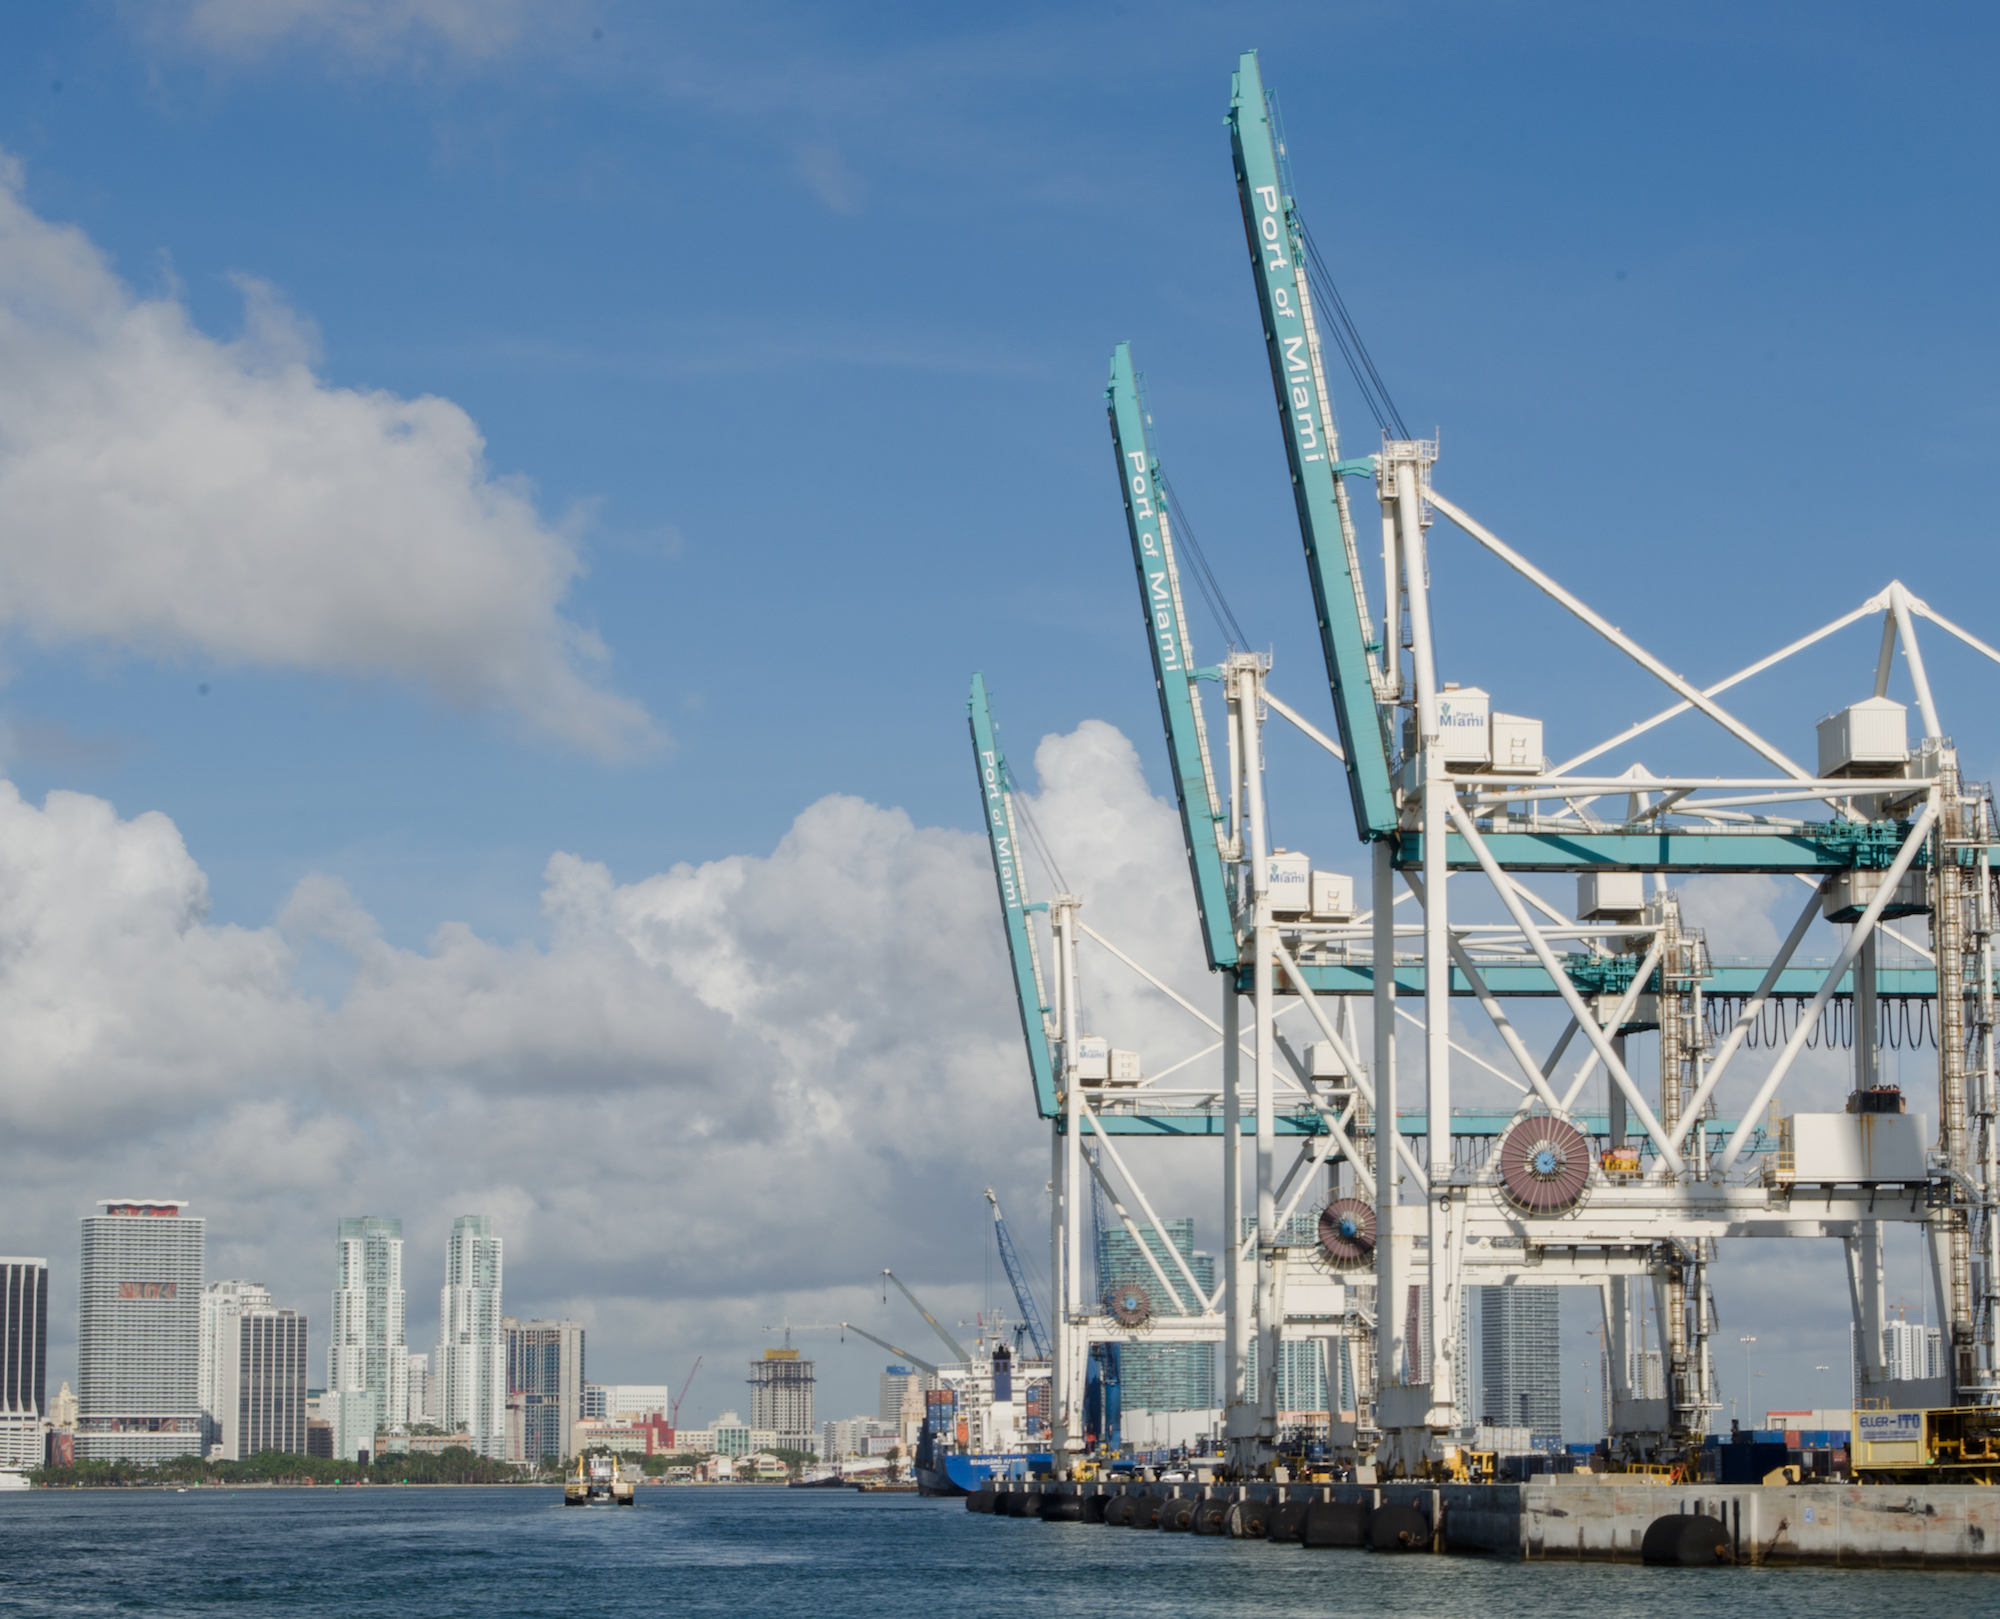 Port of Miami from R/V Walton Smith. Image credit: NOAA